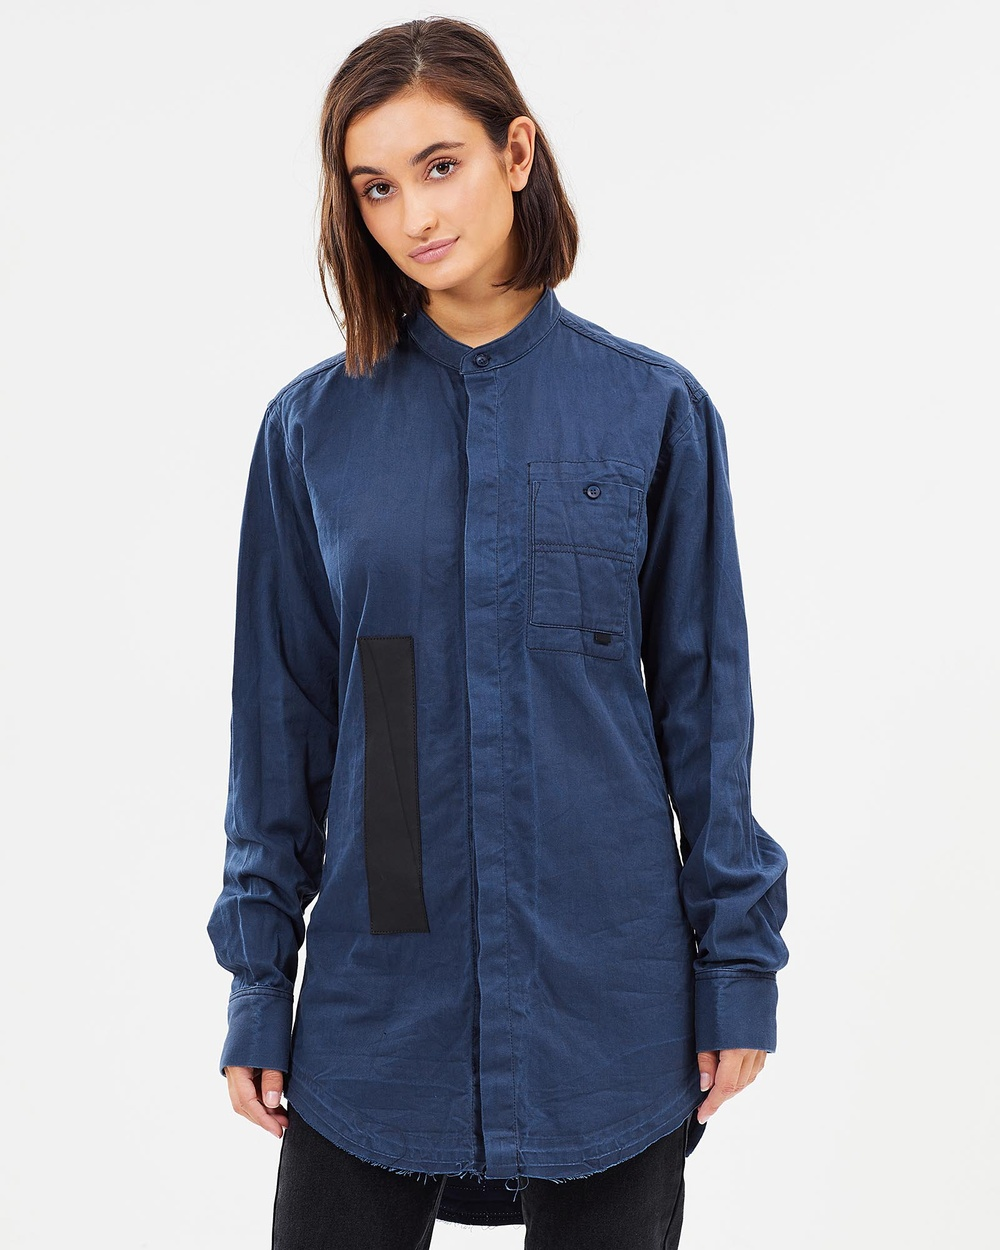 Surrounded By Ghosts The Bornite Shirt Dress Dresses Navy The Bornite Shirt Dress